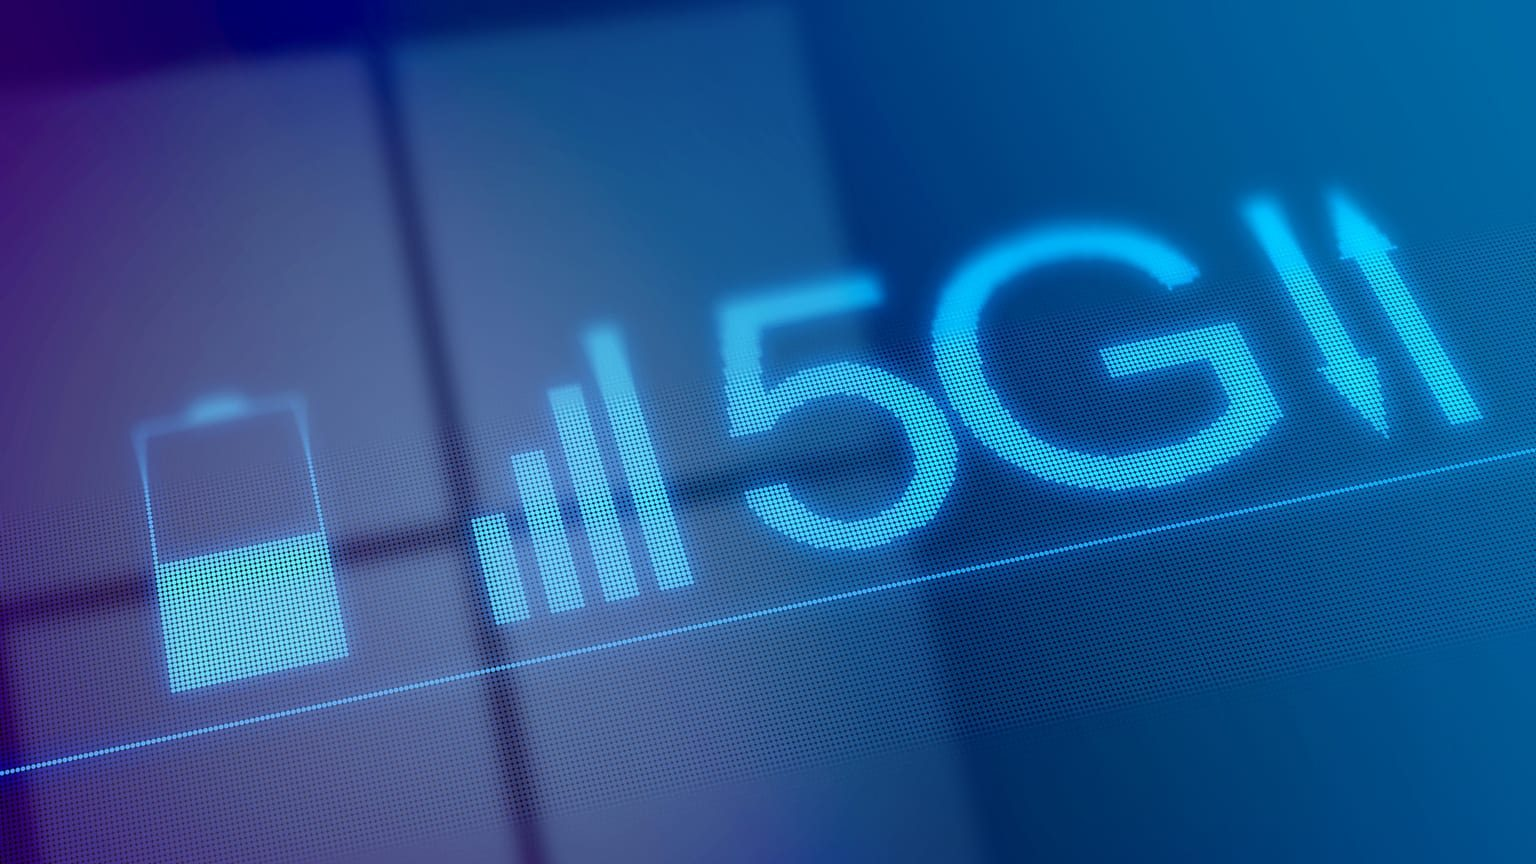 Graphic illustration of a 5G network